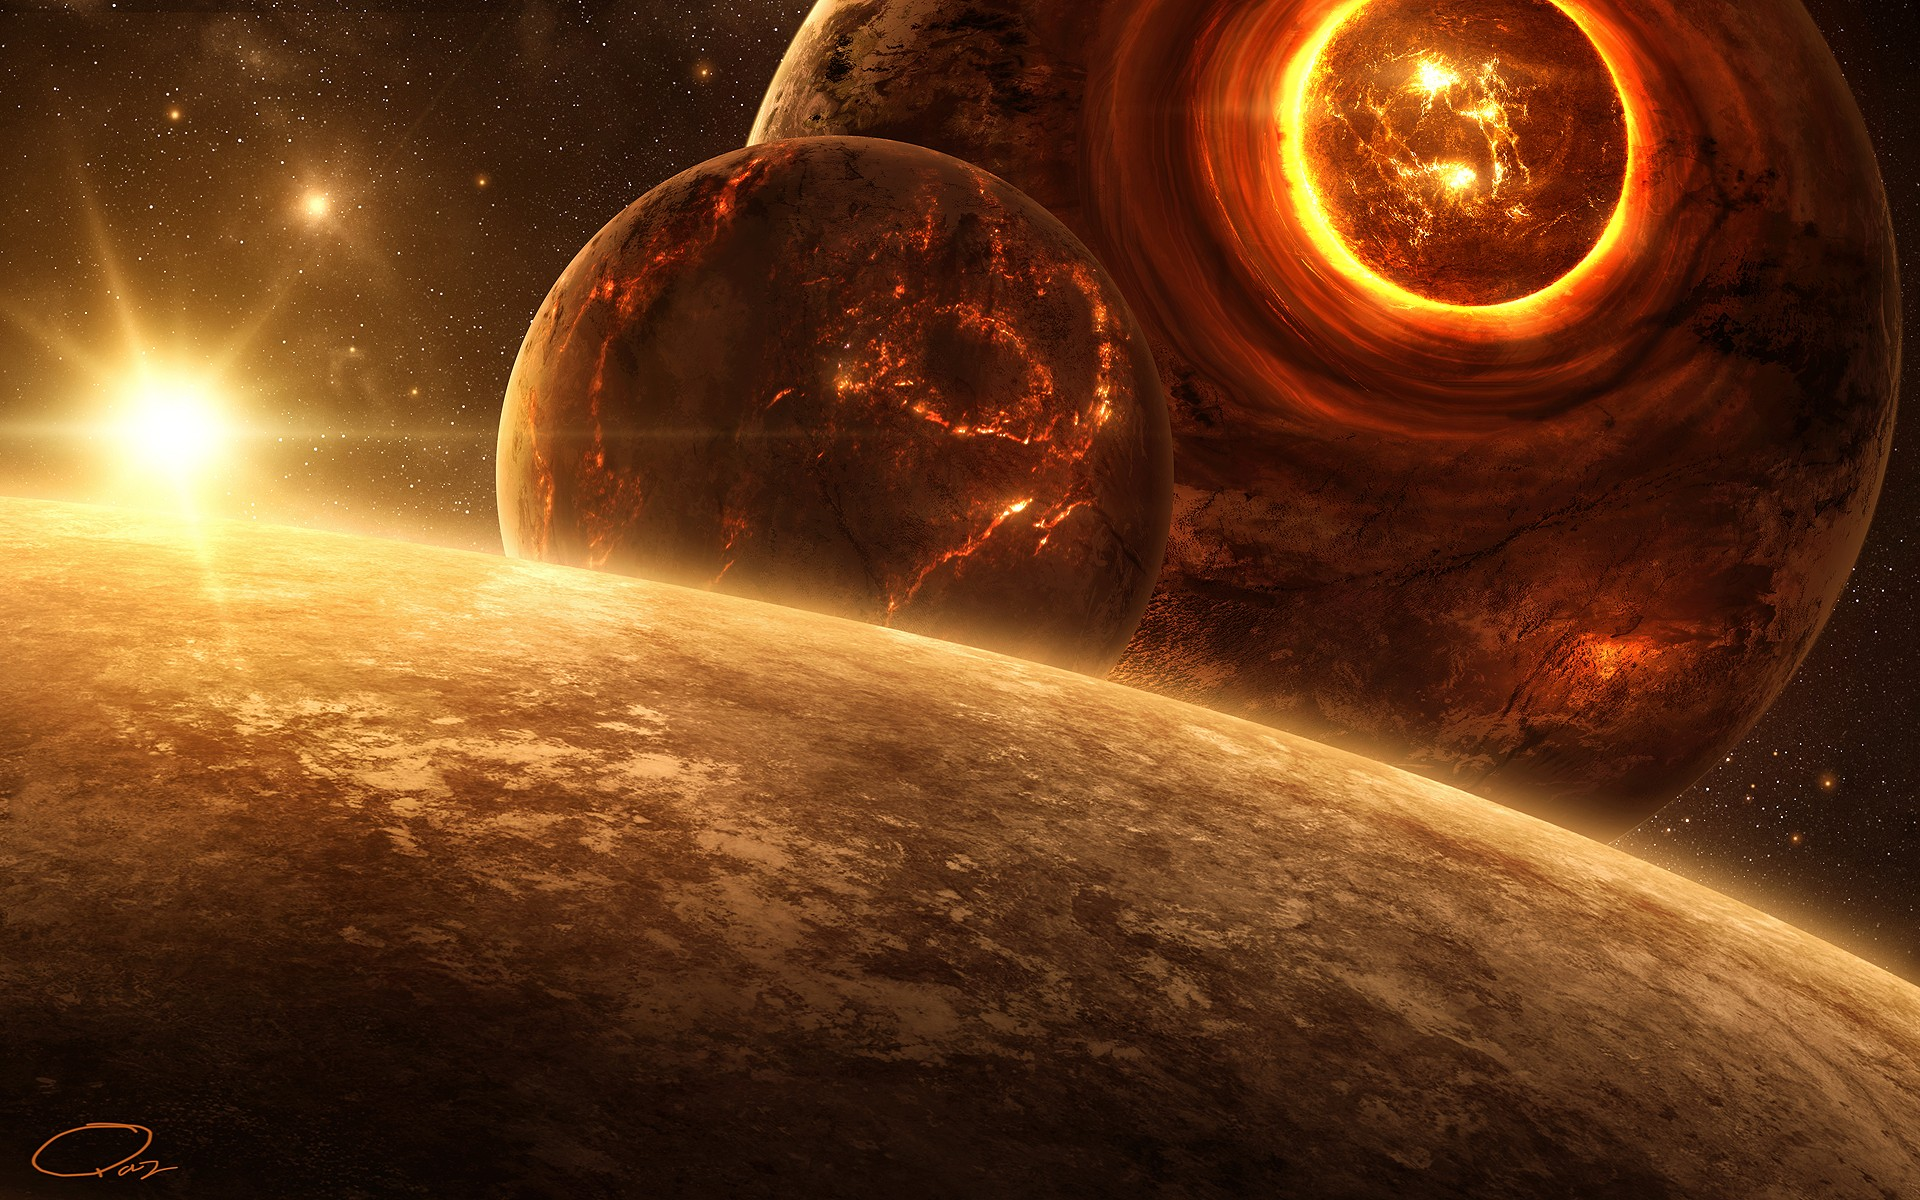 Cosmic wallpaper ·① Download free awesome HD wallpapers ...